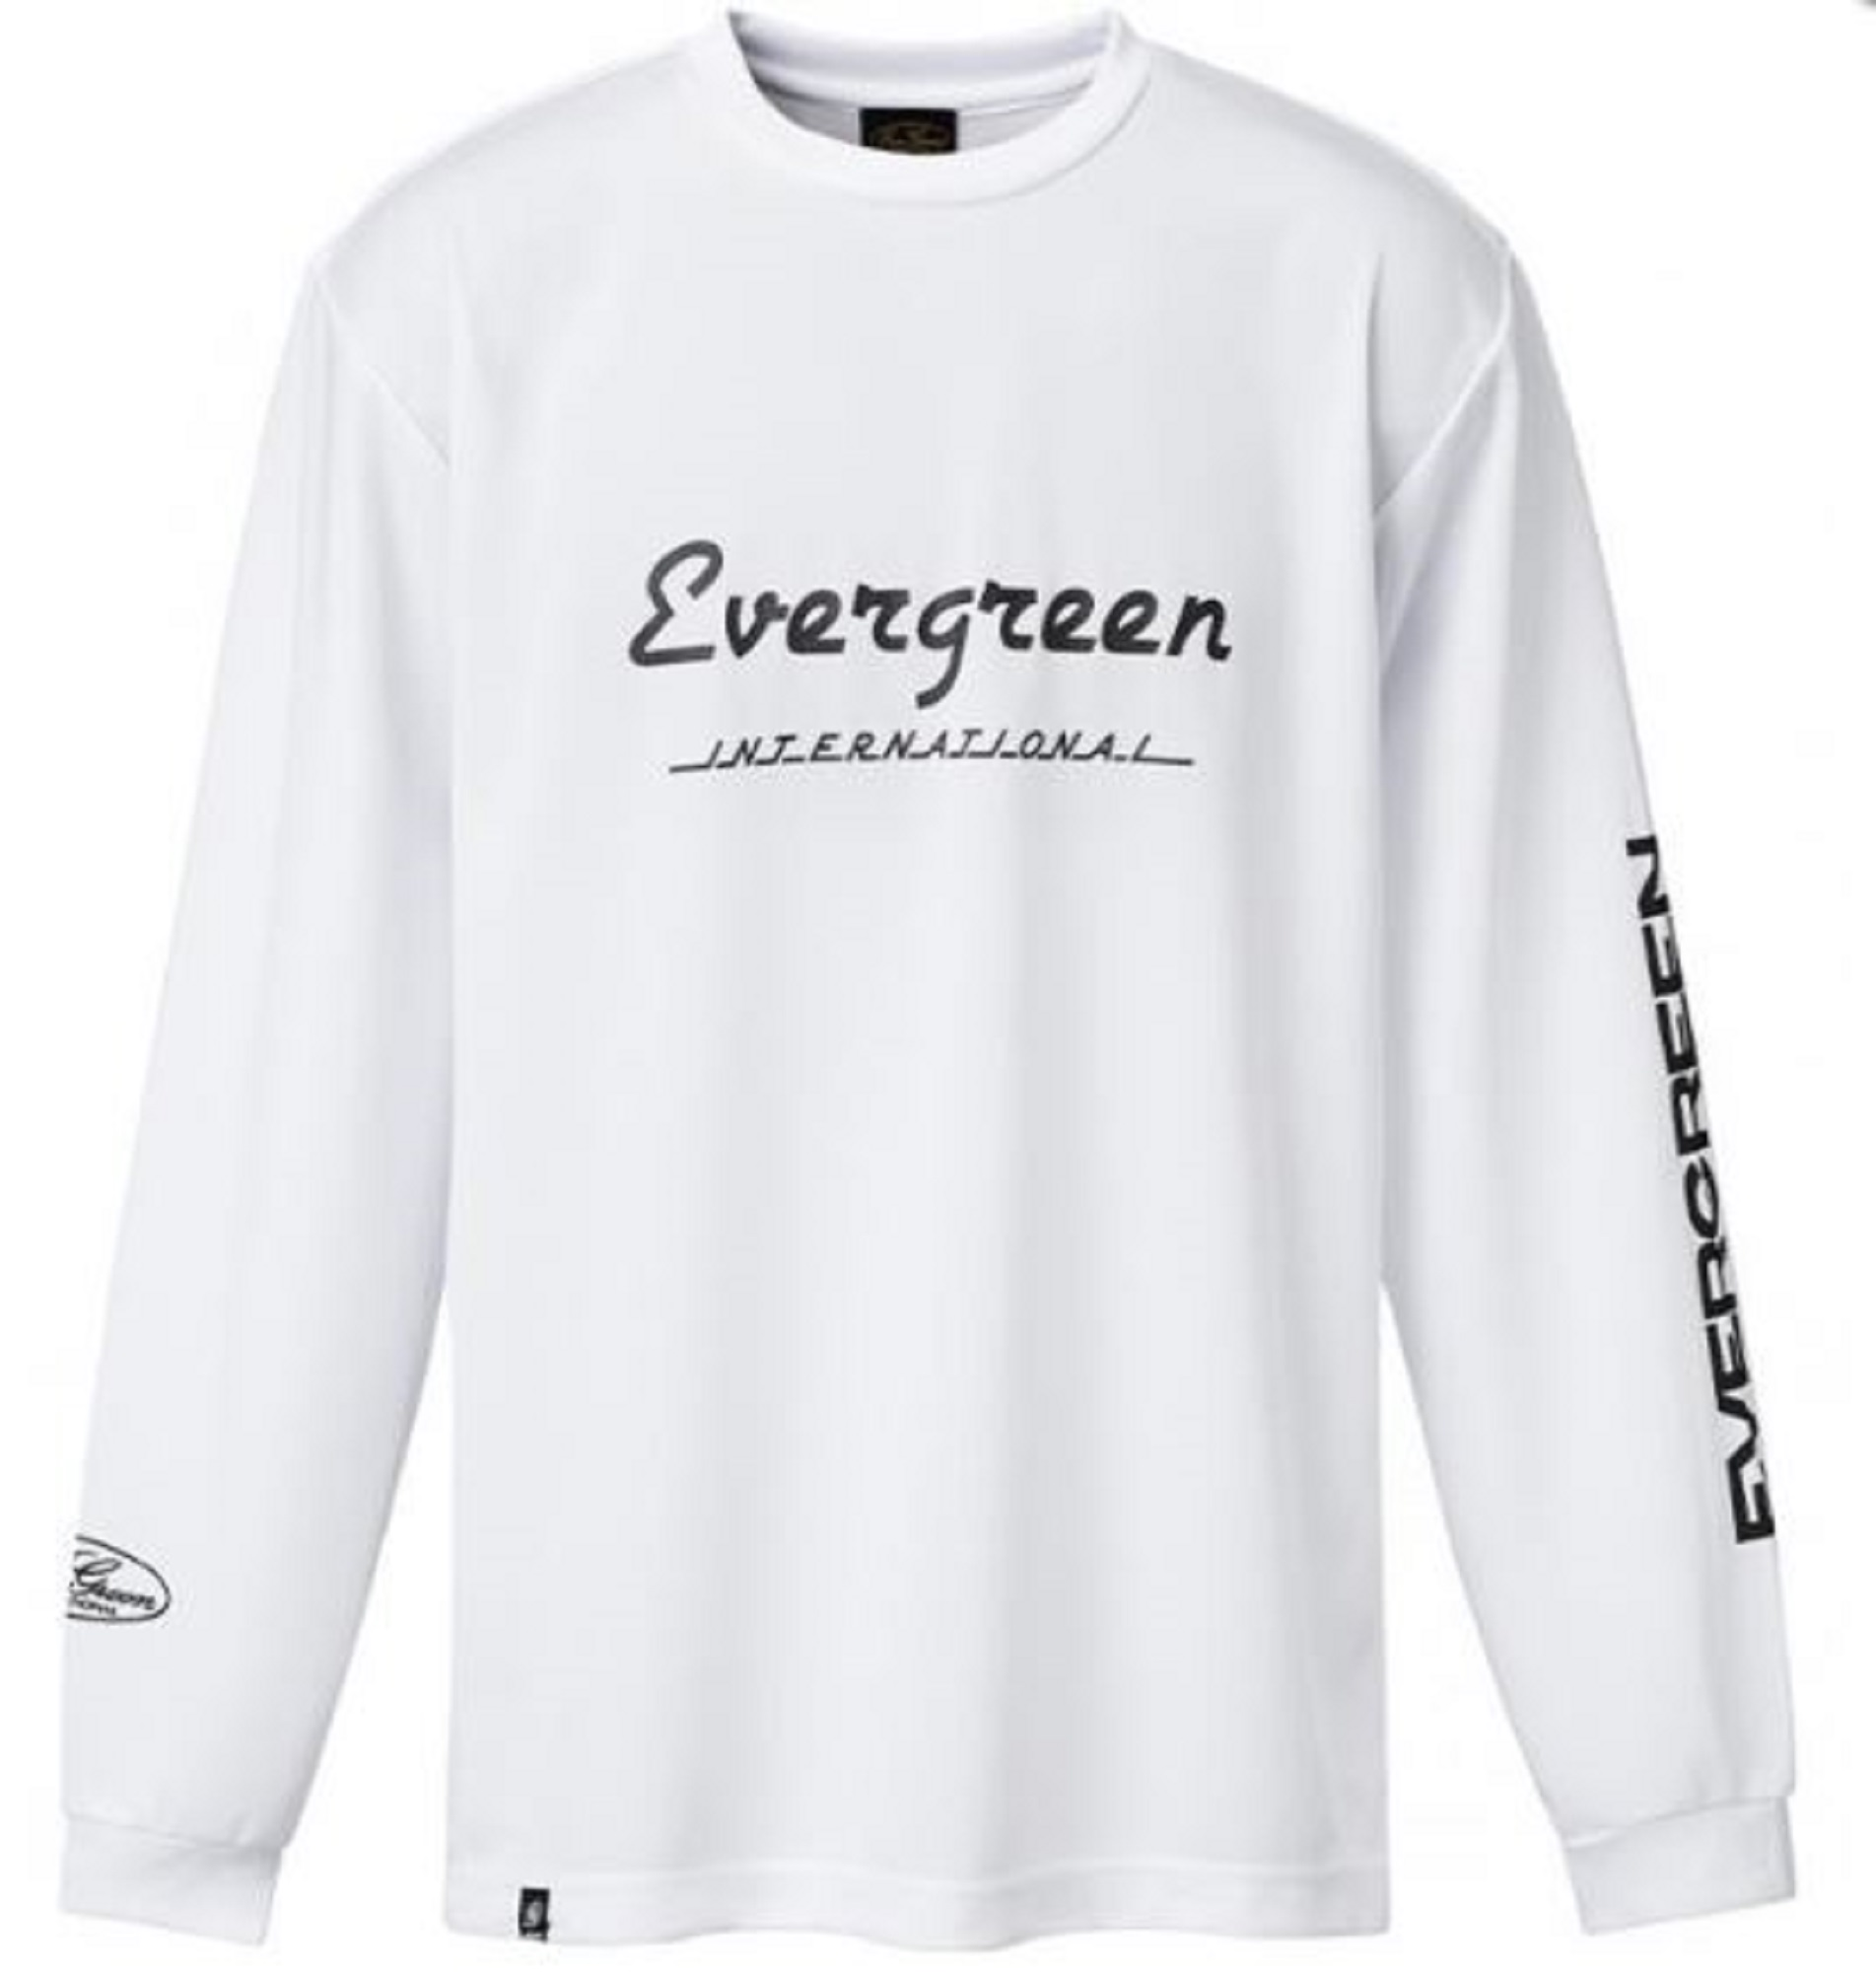 Evergreen T-Shirt Dry Fit Long Sleeve F Type Size XXL White (0112)